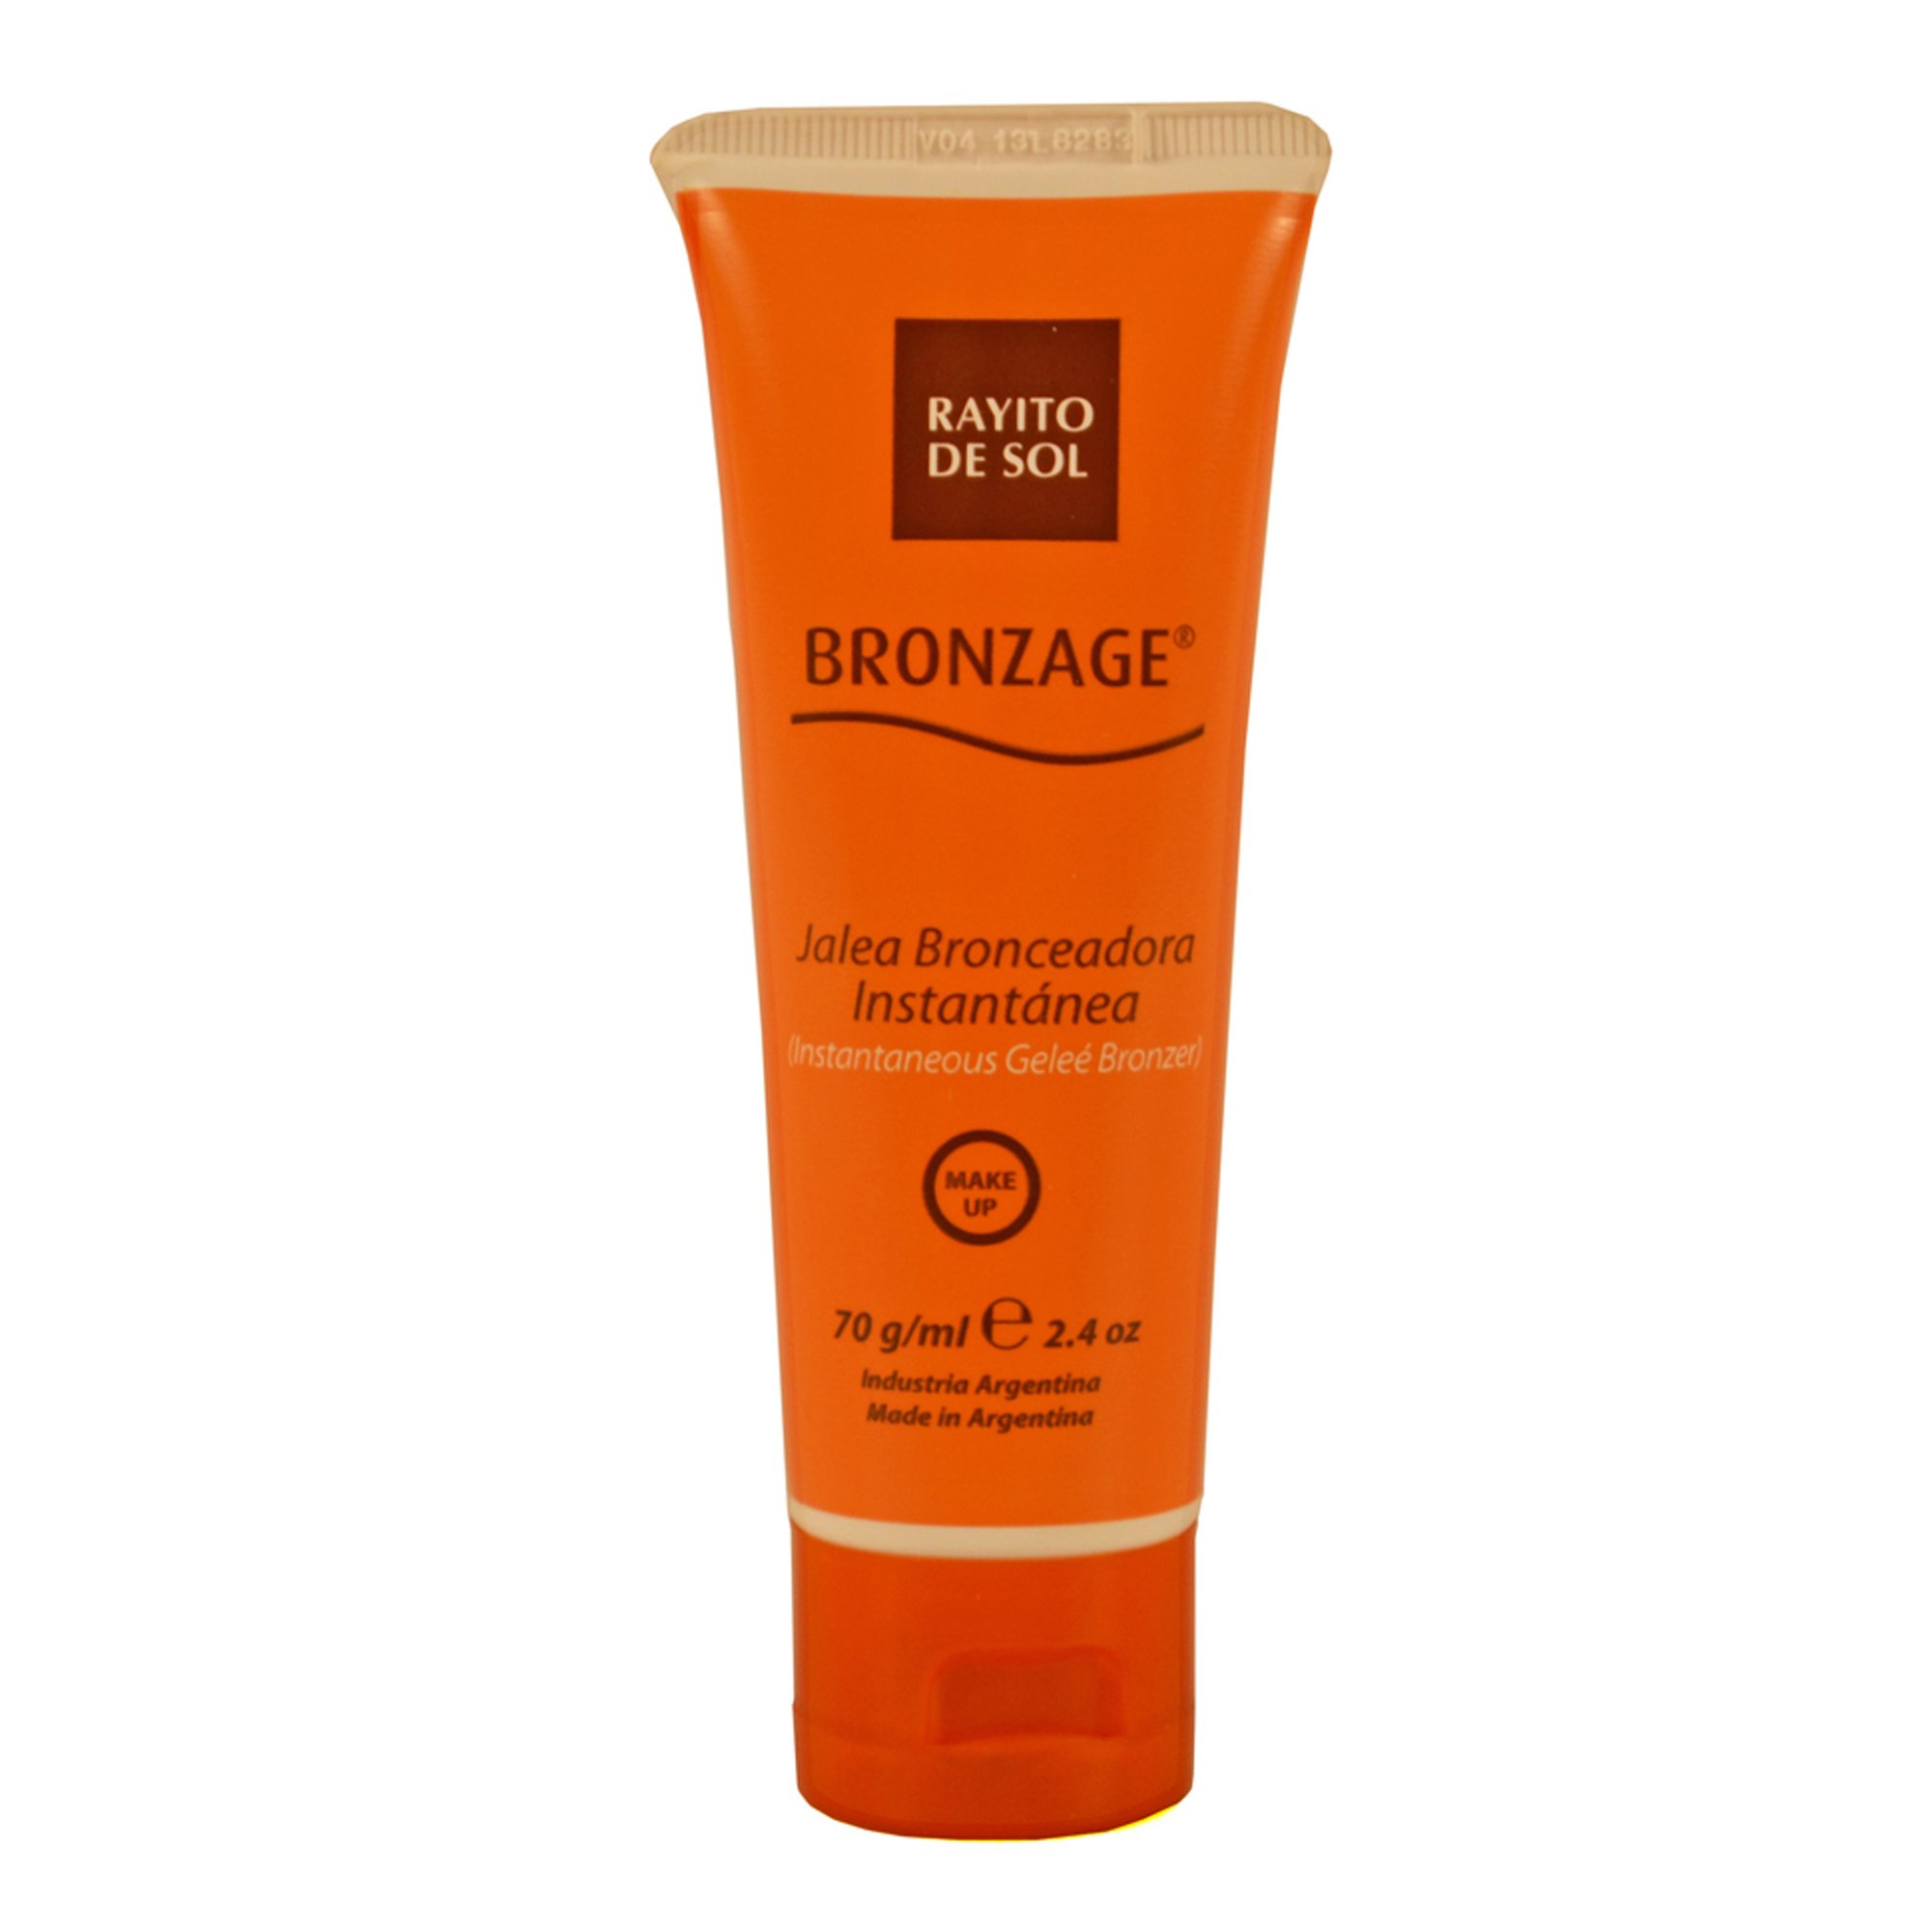 Rayito De Sol Instant Bronzing Gel, 2.4 Ounce by Rayito De Sol